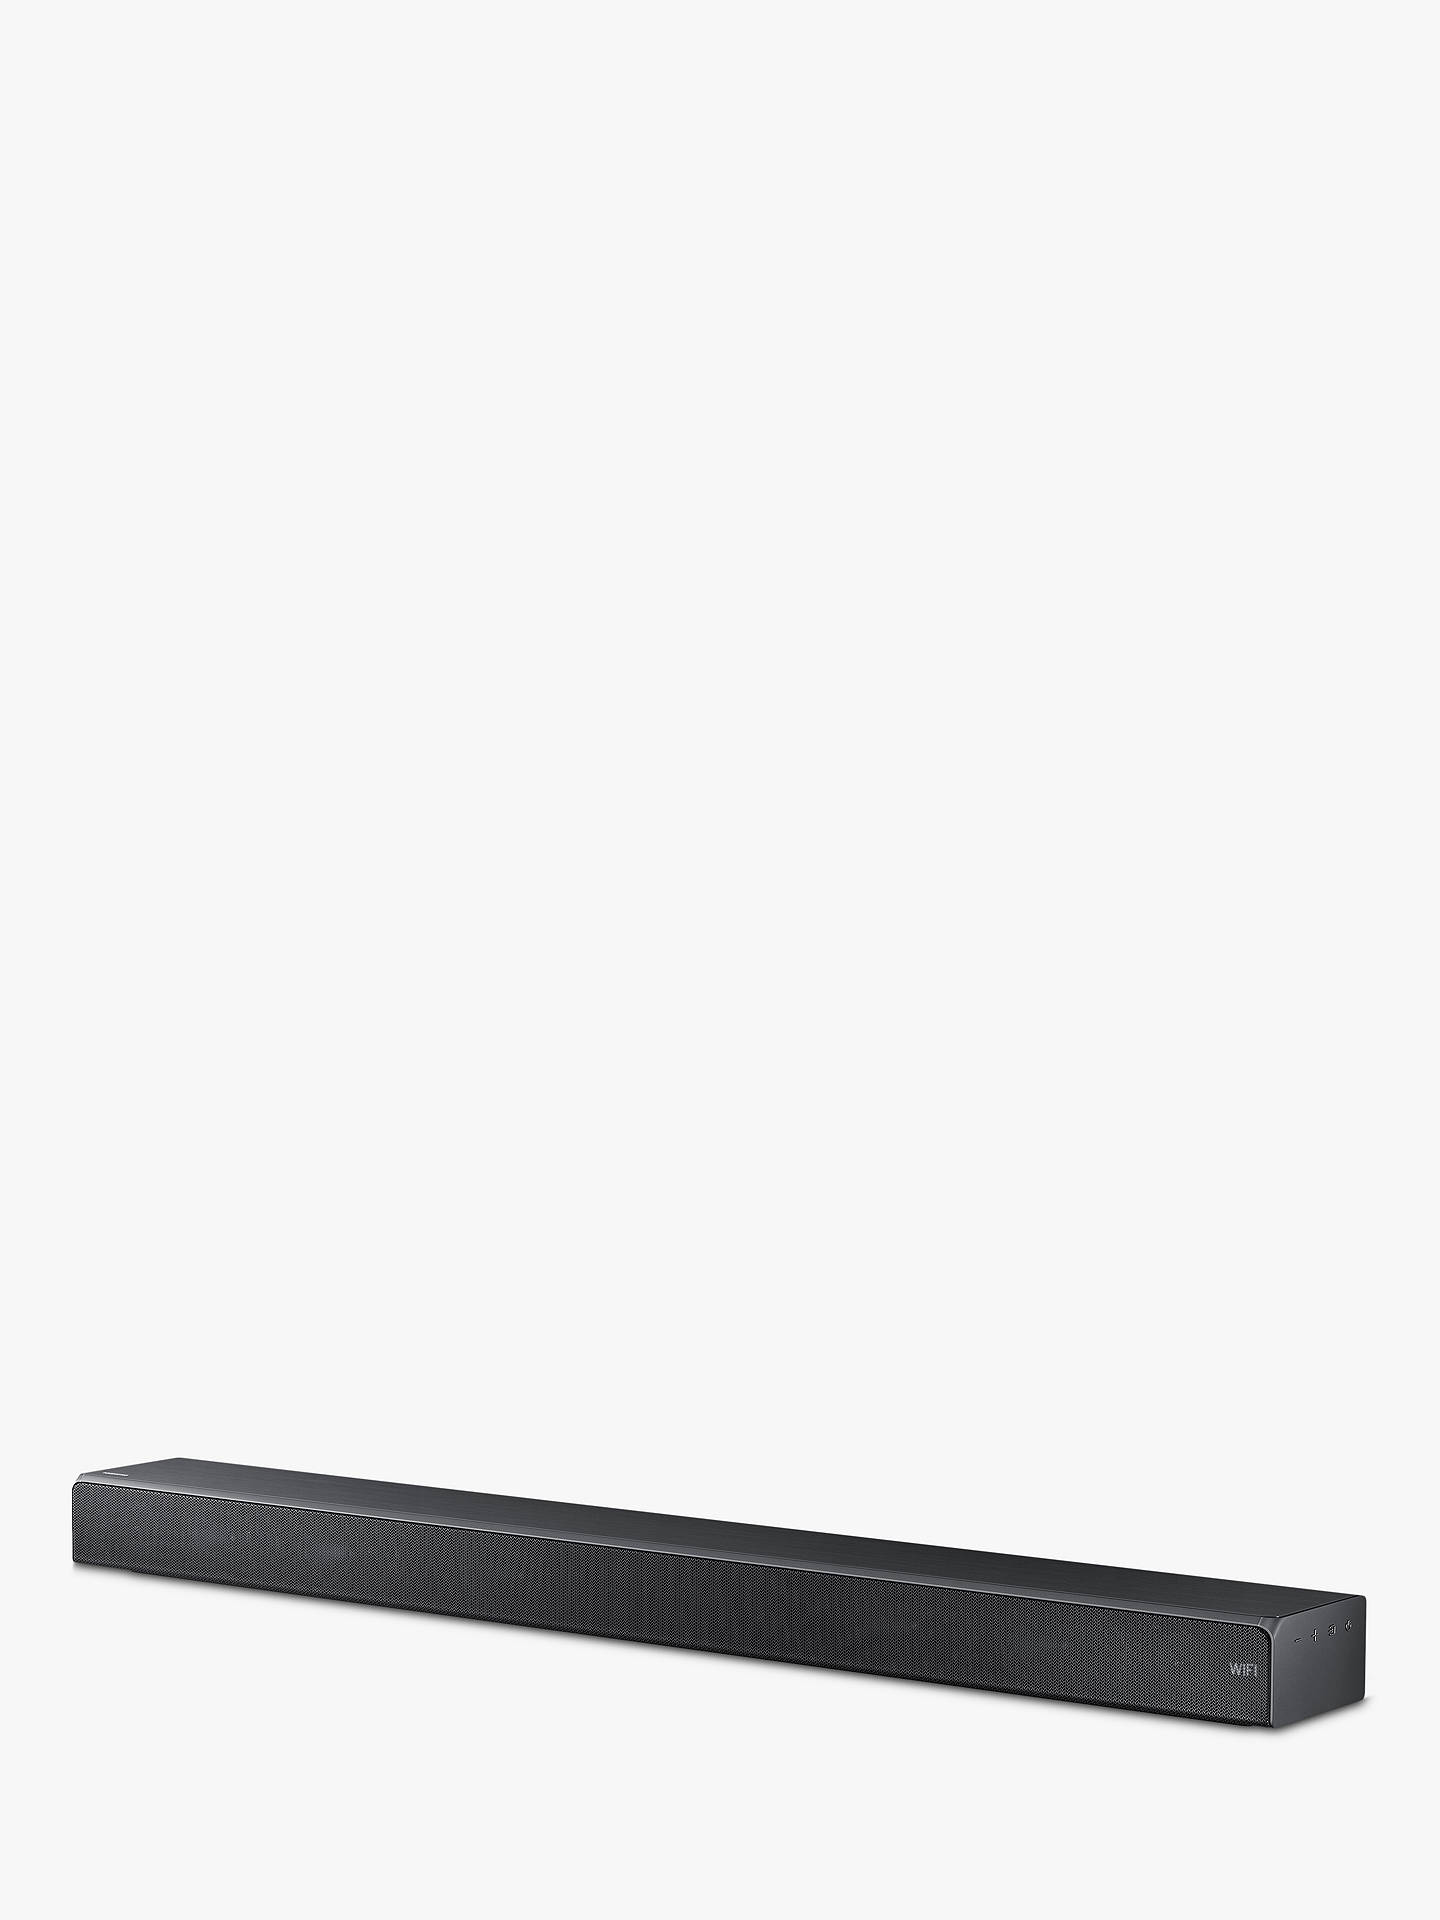 BuySamsung HW-MS650 Bluetooth Wi-Fi All-In-One Sound Bar with Distortion Cancelling, Titanium Grey Online at johnlewis.com